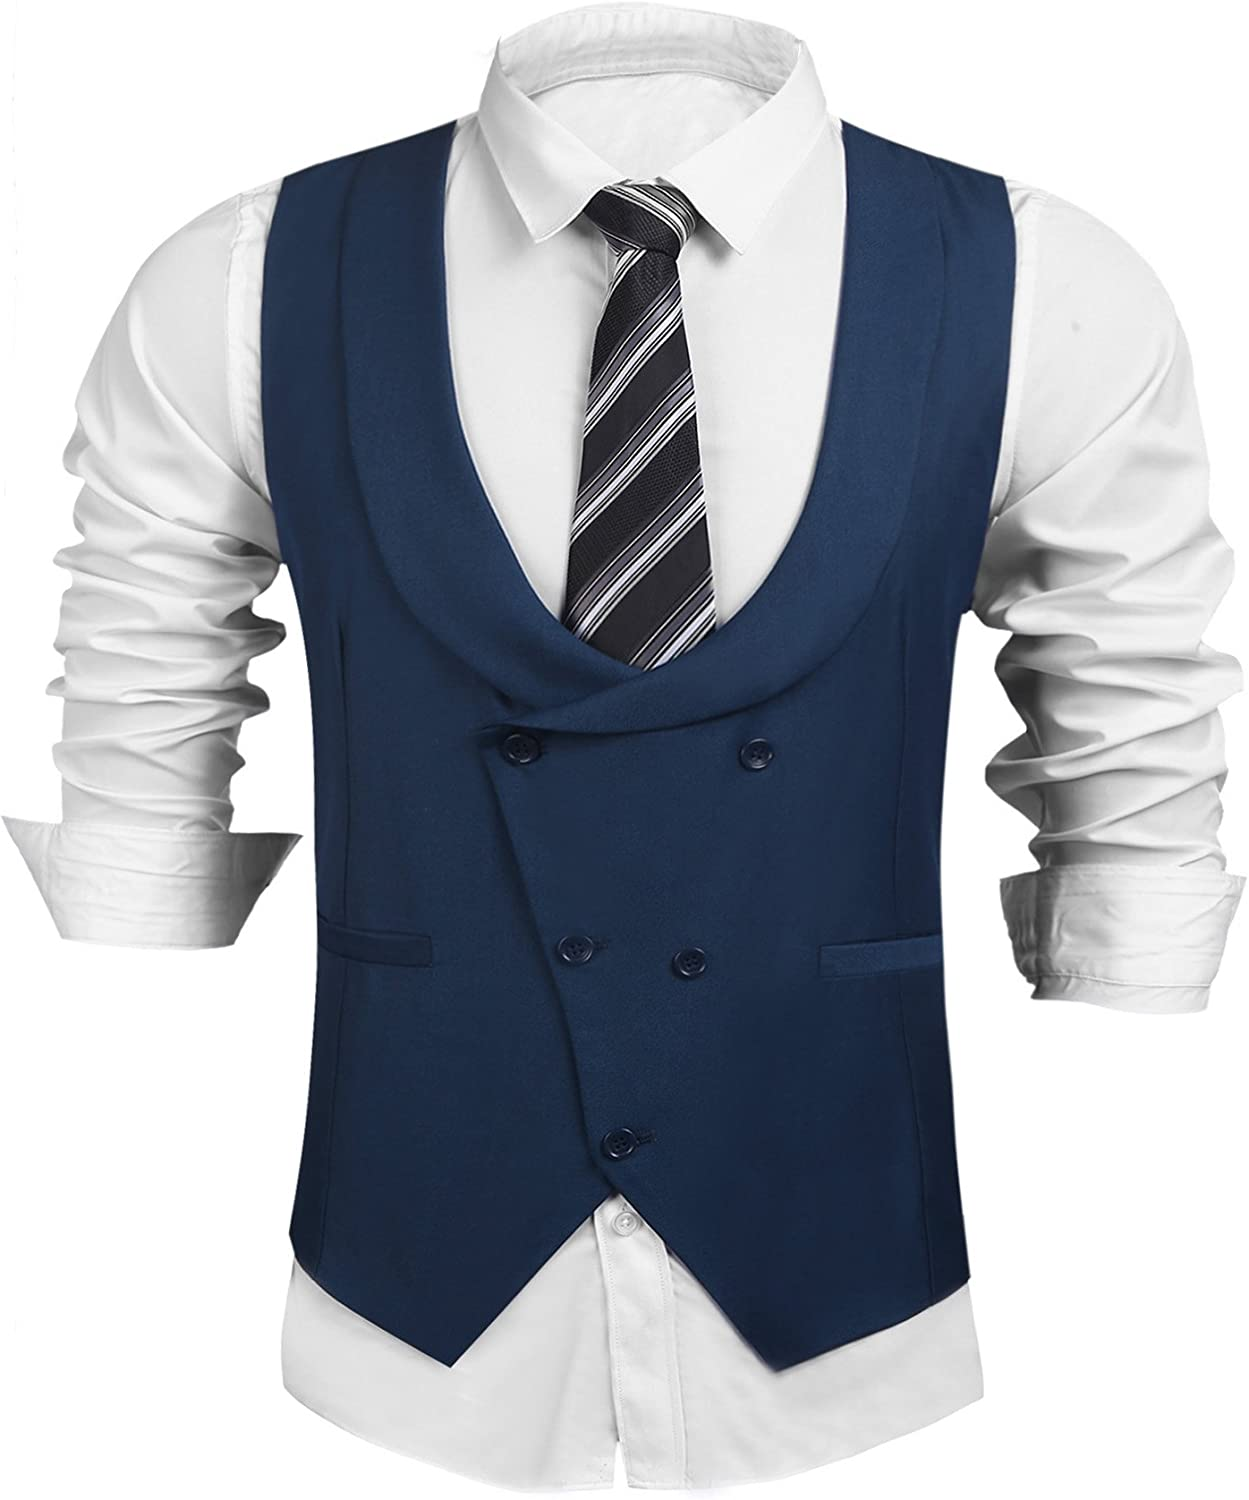 COOFANDY Men's Formal Suit Vest Business Waistcoat Double Breasted U-Neck Shawl Collar Slim Fit Waistcoat for Suit Tuxedo